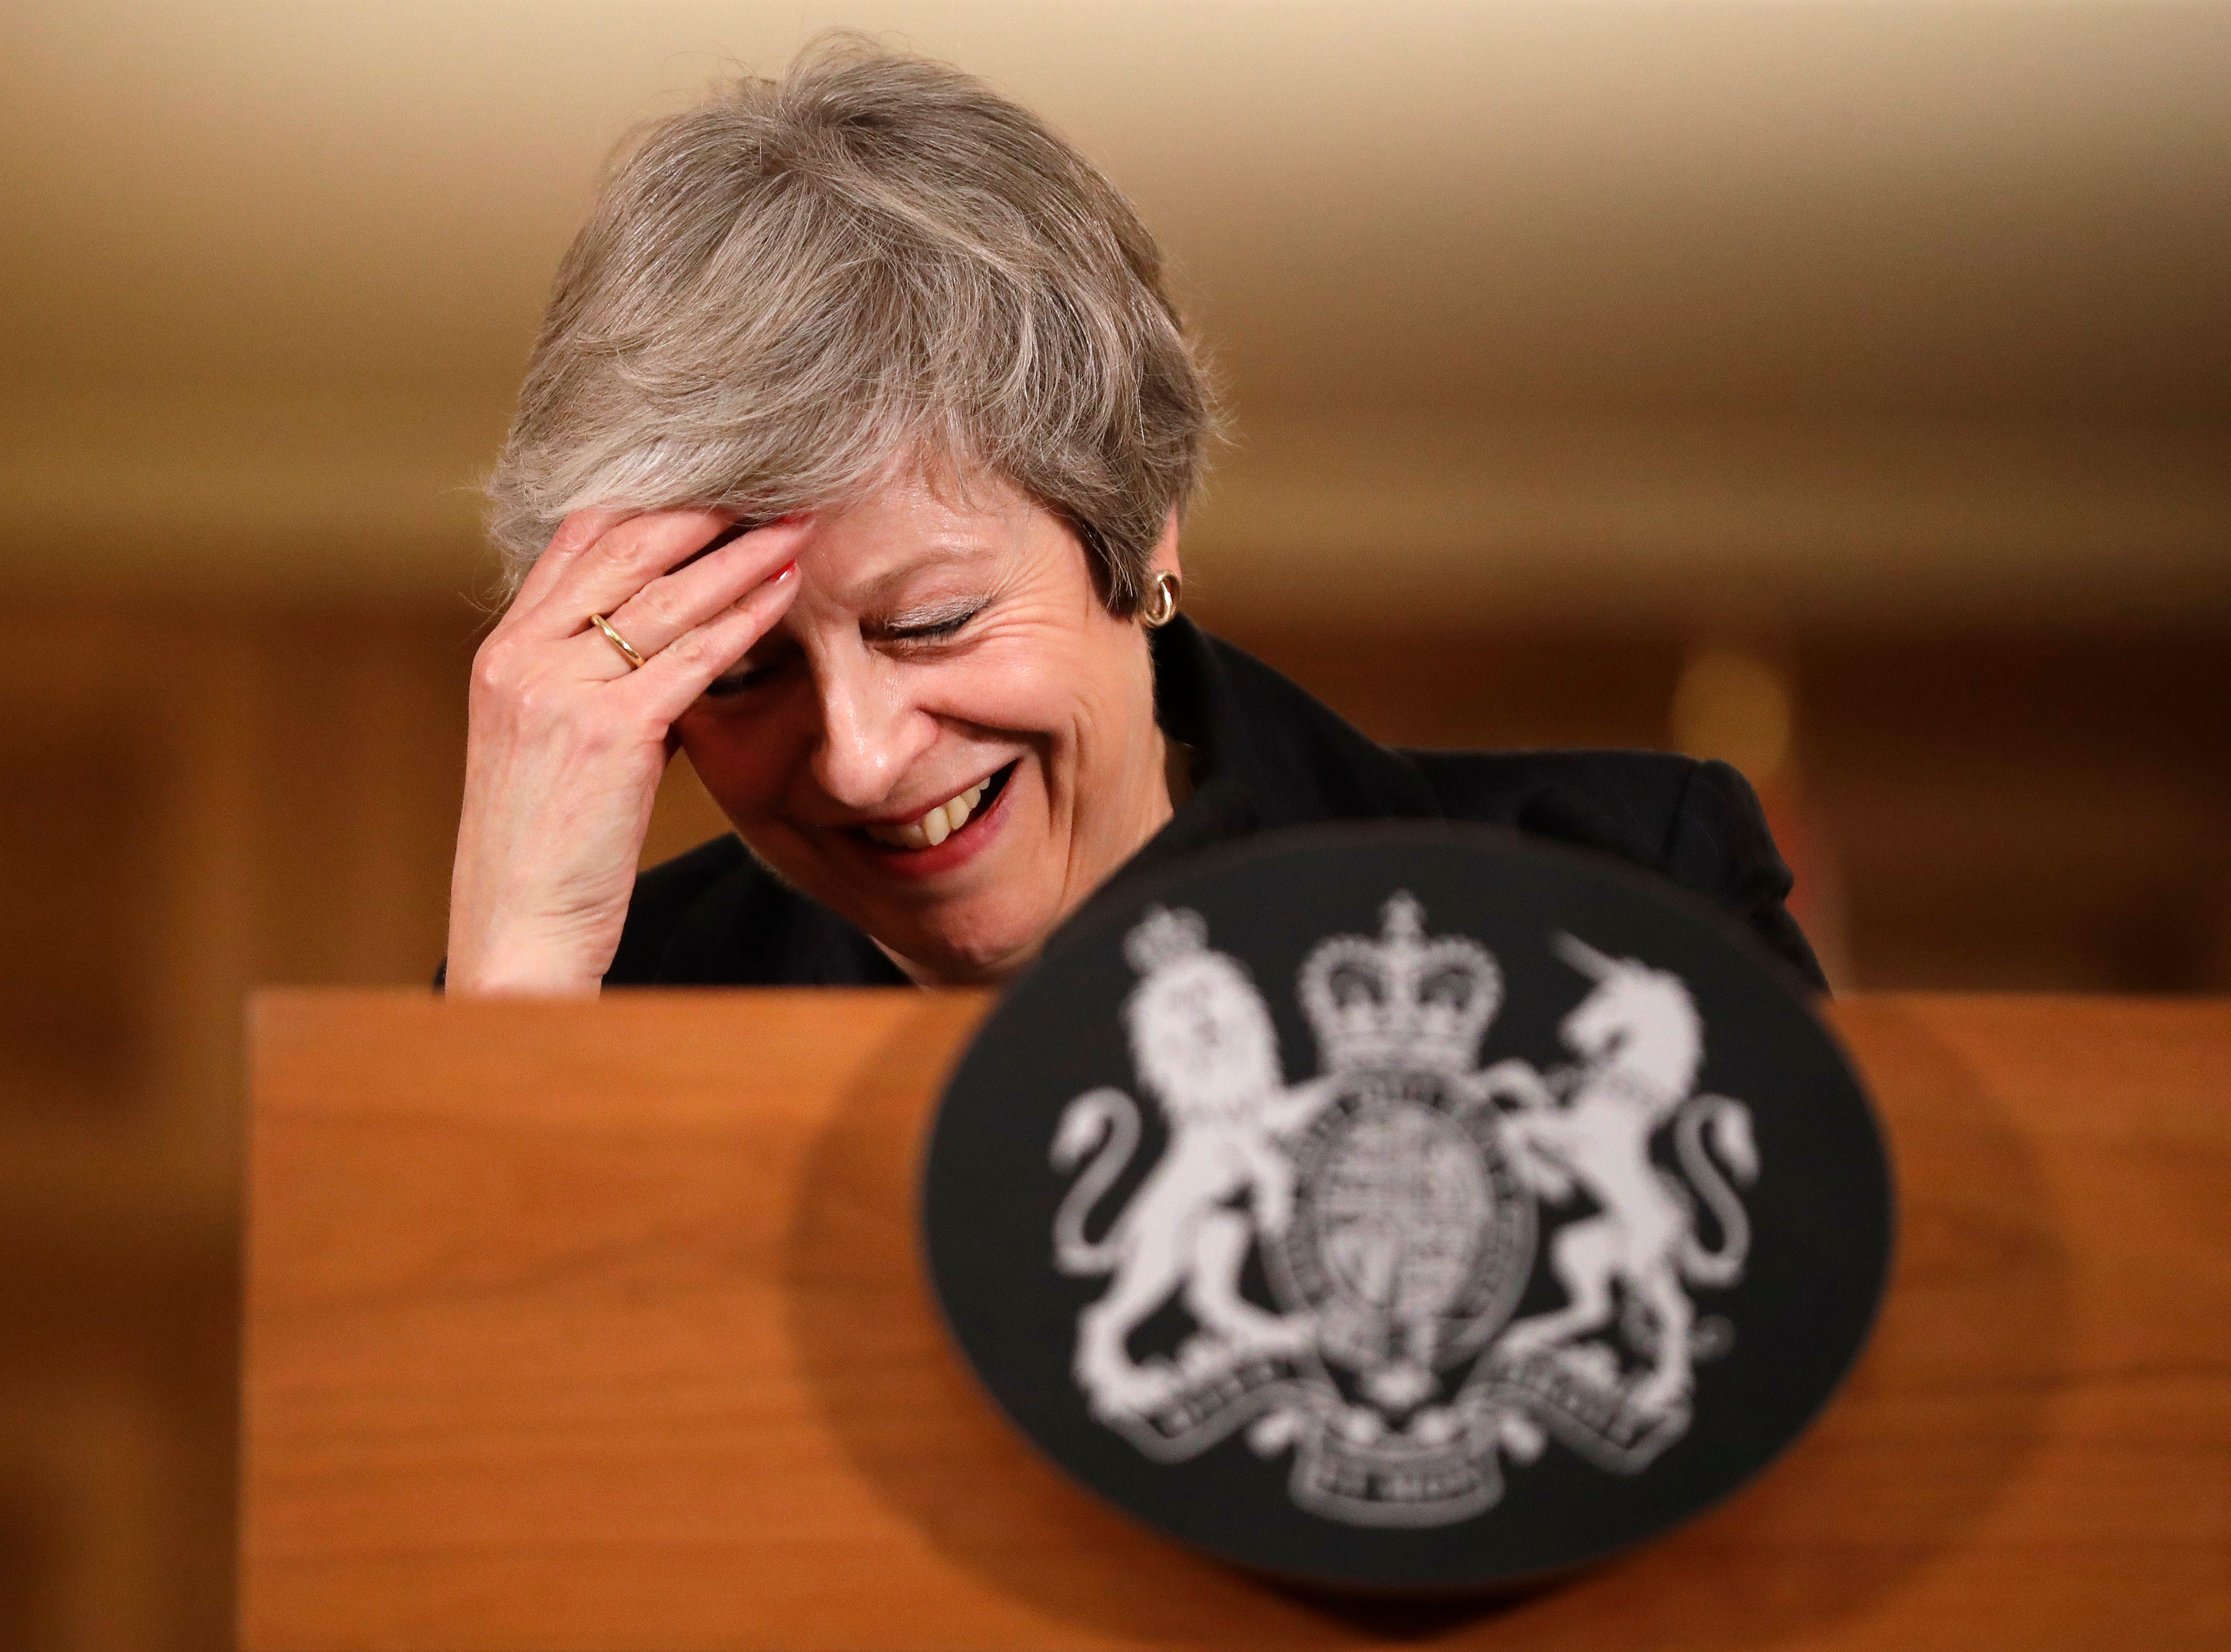 Britain's Prime Minister Theresa May reacts during a press conference inside 10 Downing Street in London, Thursday, Nov. 15, 2018. Two British Cabinet ministers, including Brexit Secretary Dominic Raab, resigned Thursday in opposition to the divorce deal struck by Prime Minister Theresa May with the EU, a major blow to her authority and her ability to get the deal through Parliament.